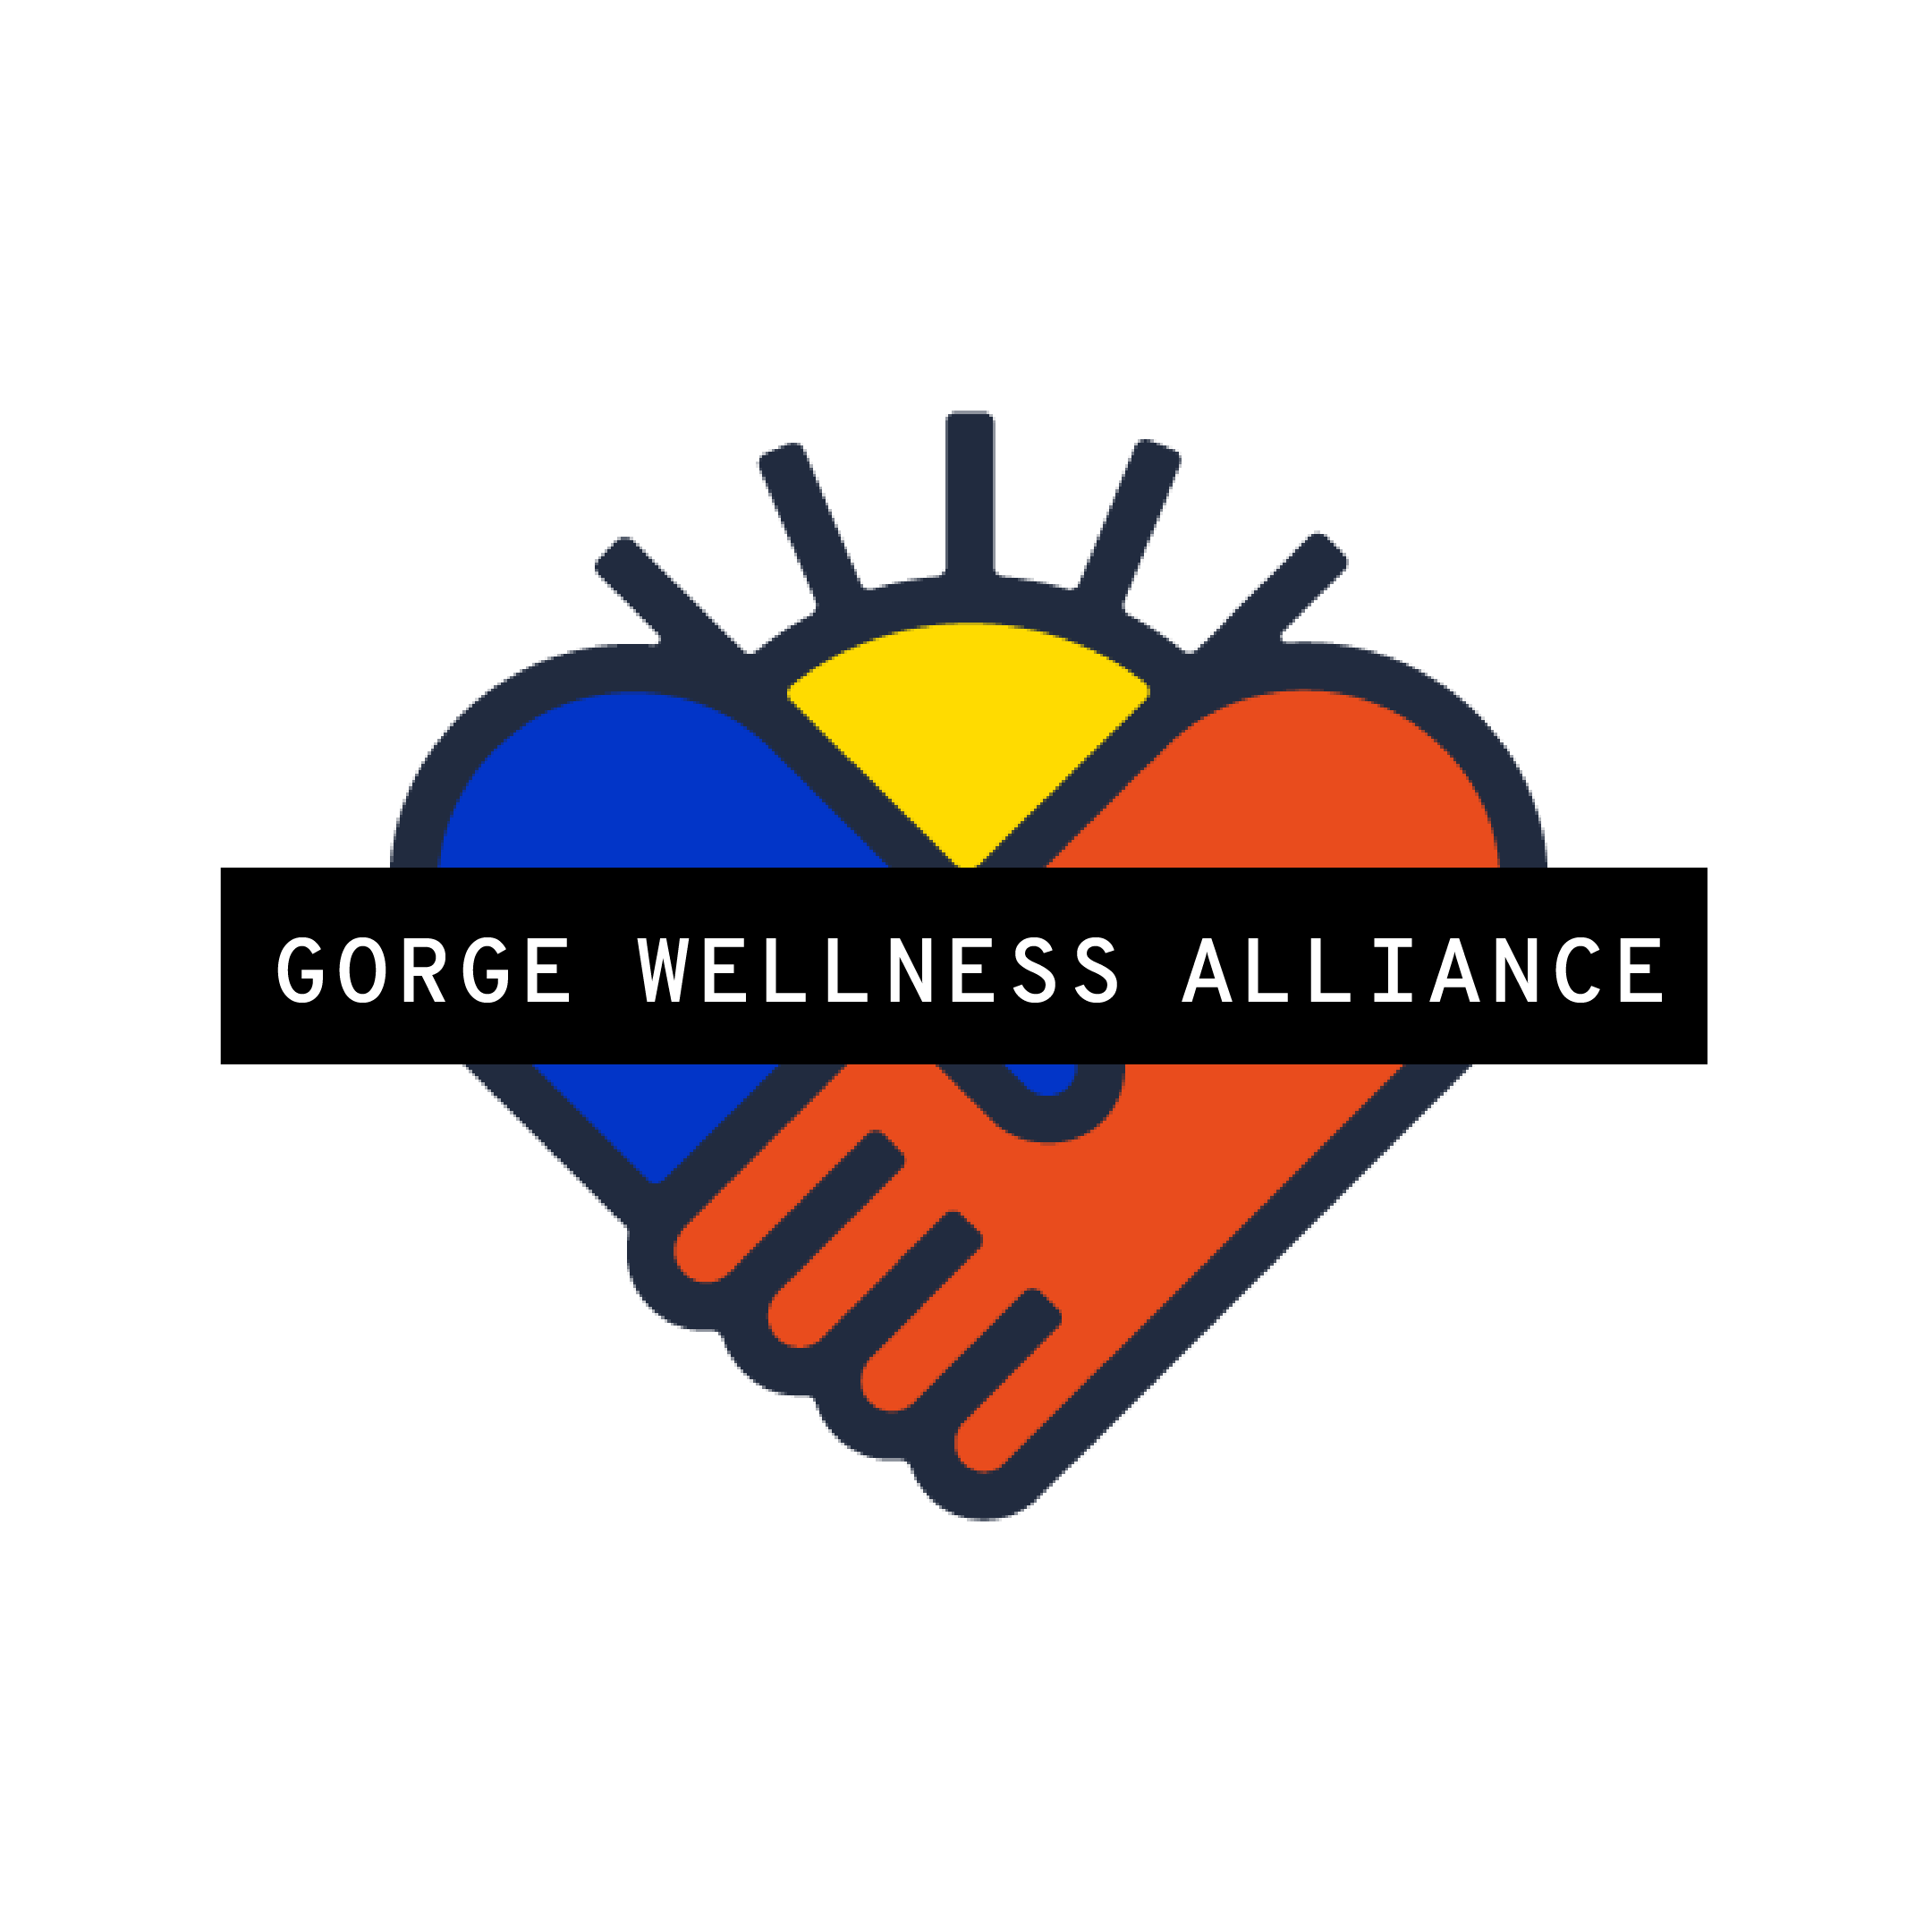 buda-homepage thumbnail-gorge wellness alliance.png